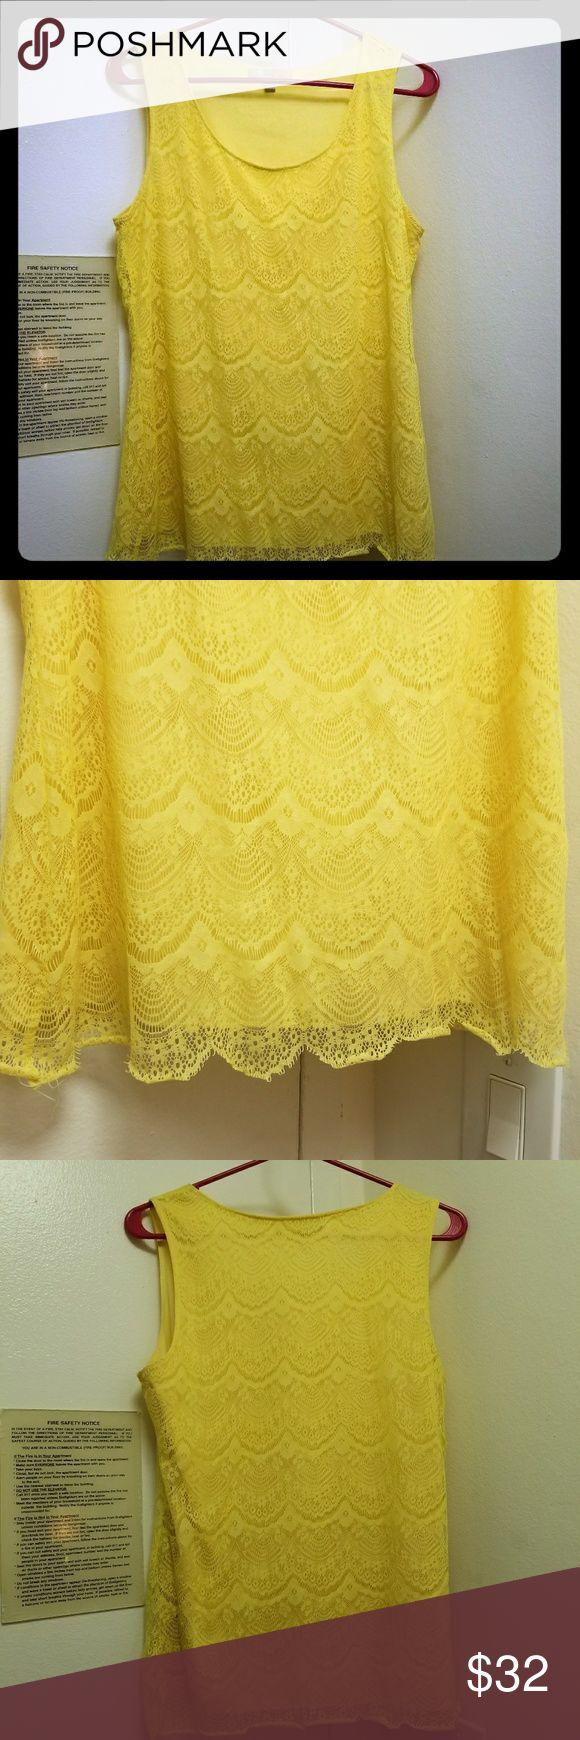 Banana Republic Yellow Lace Top In great condition! Worn twice, bottom lace curls a bit but too is basically in perfect condition!  Perfect for a night out or even a business casual look (will look great in a blazer)  Non trades please! Banana Republic Tops